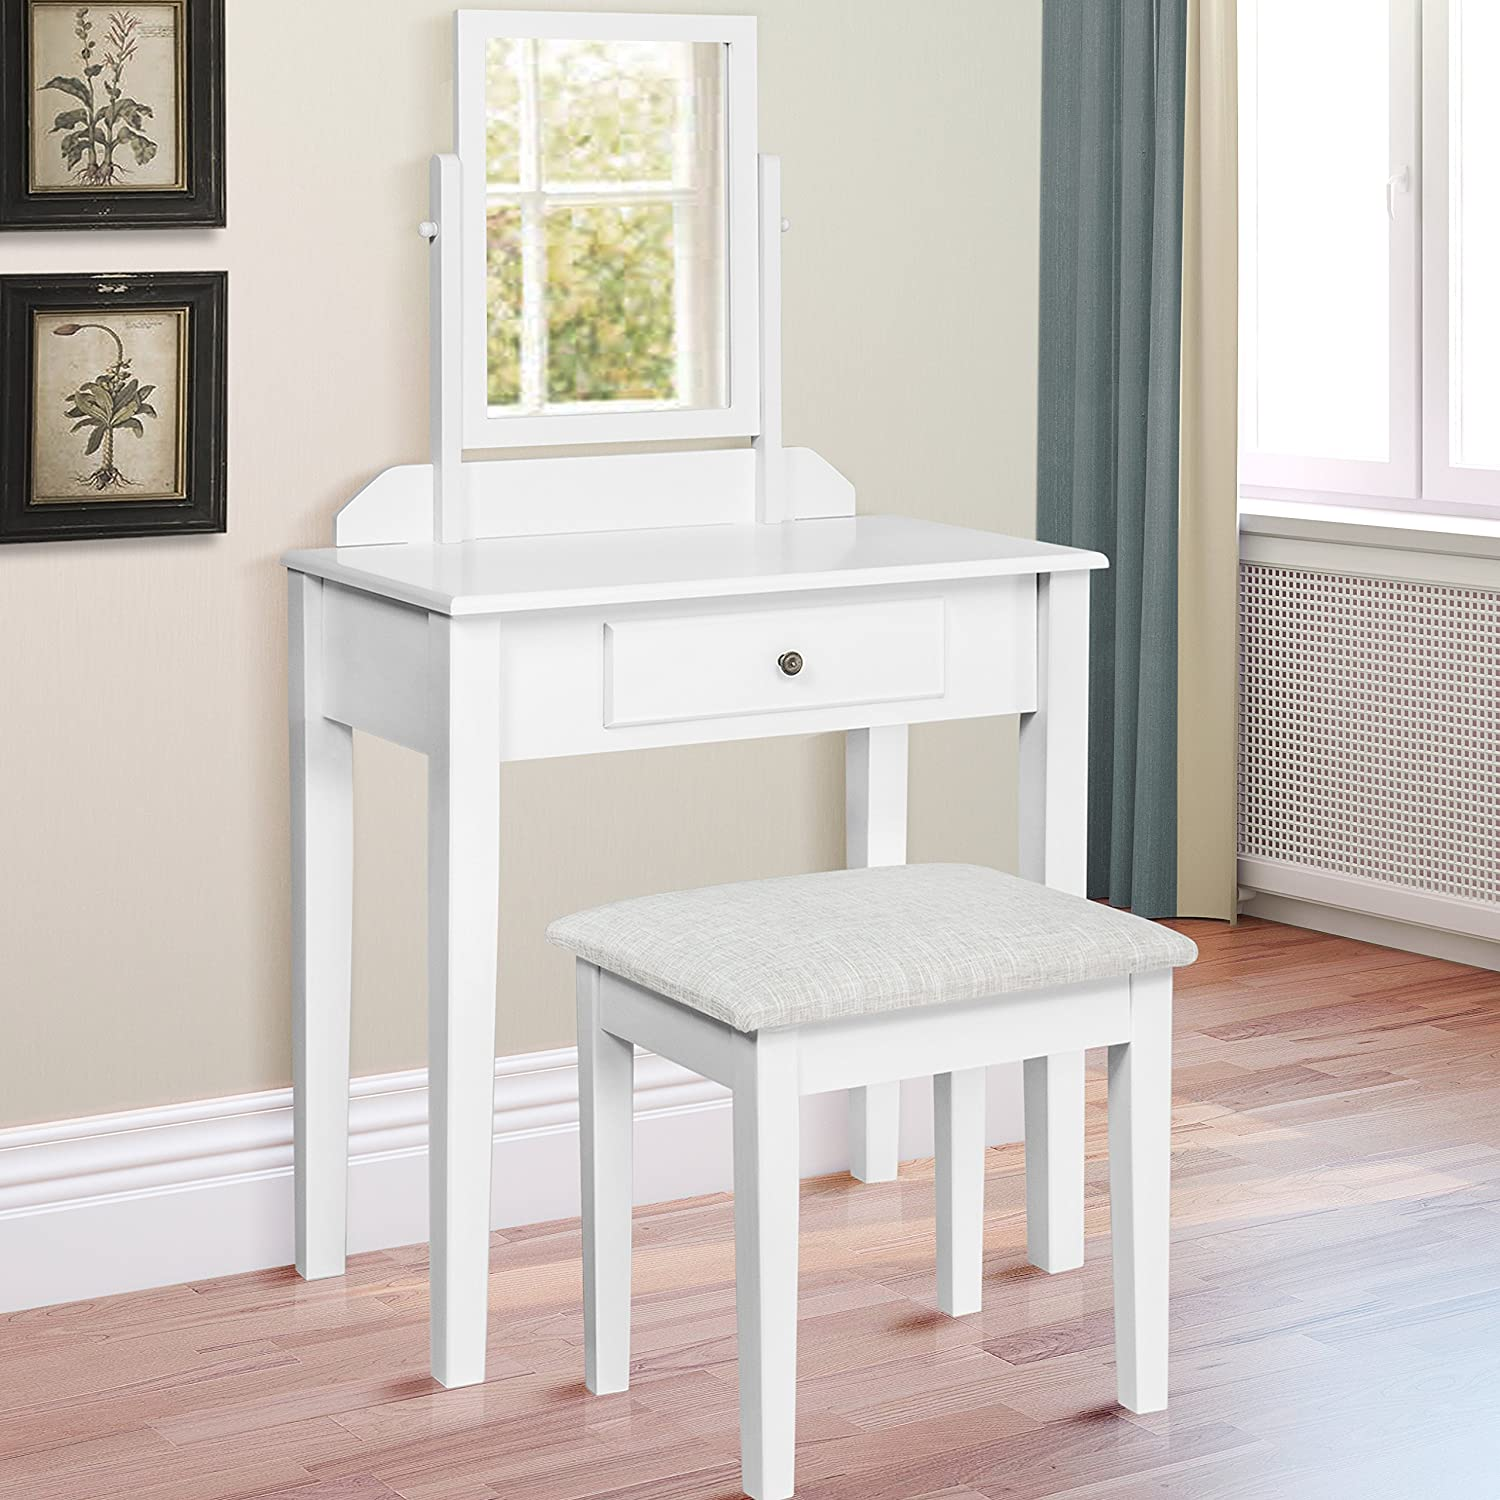 Best Choice Products Vanity Table Set W  Stool Bedroom Home Furniture  White. Vanities   Amazon com